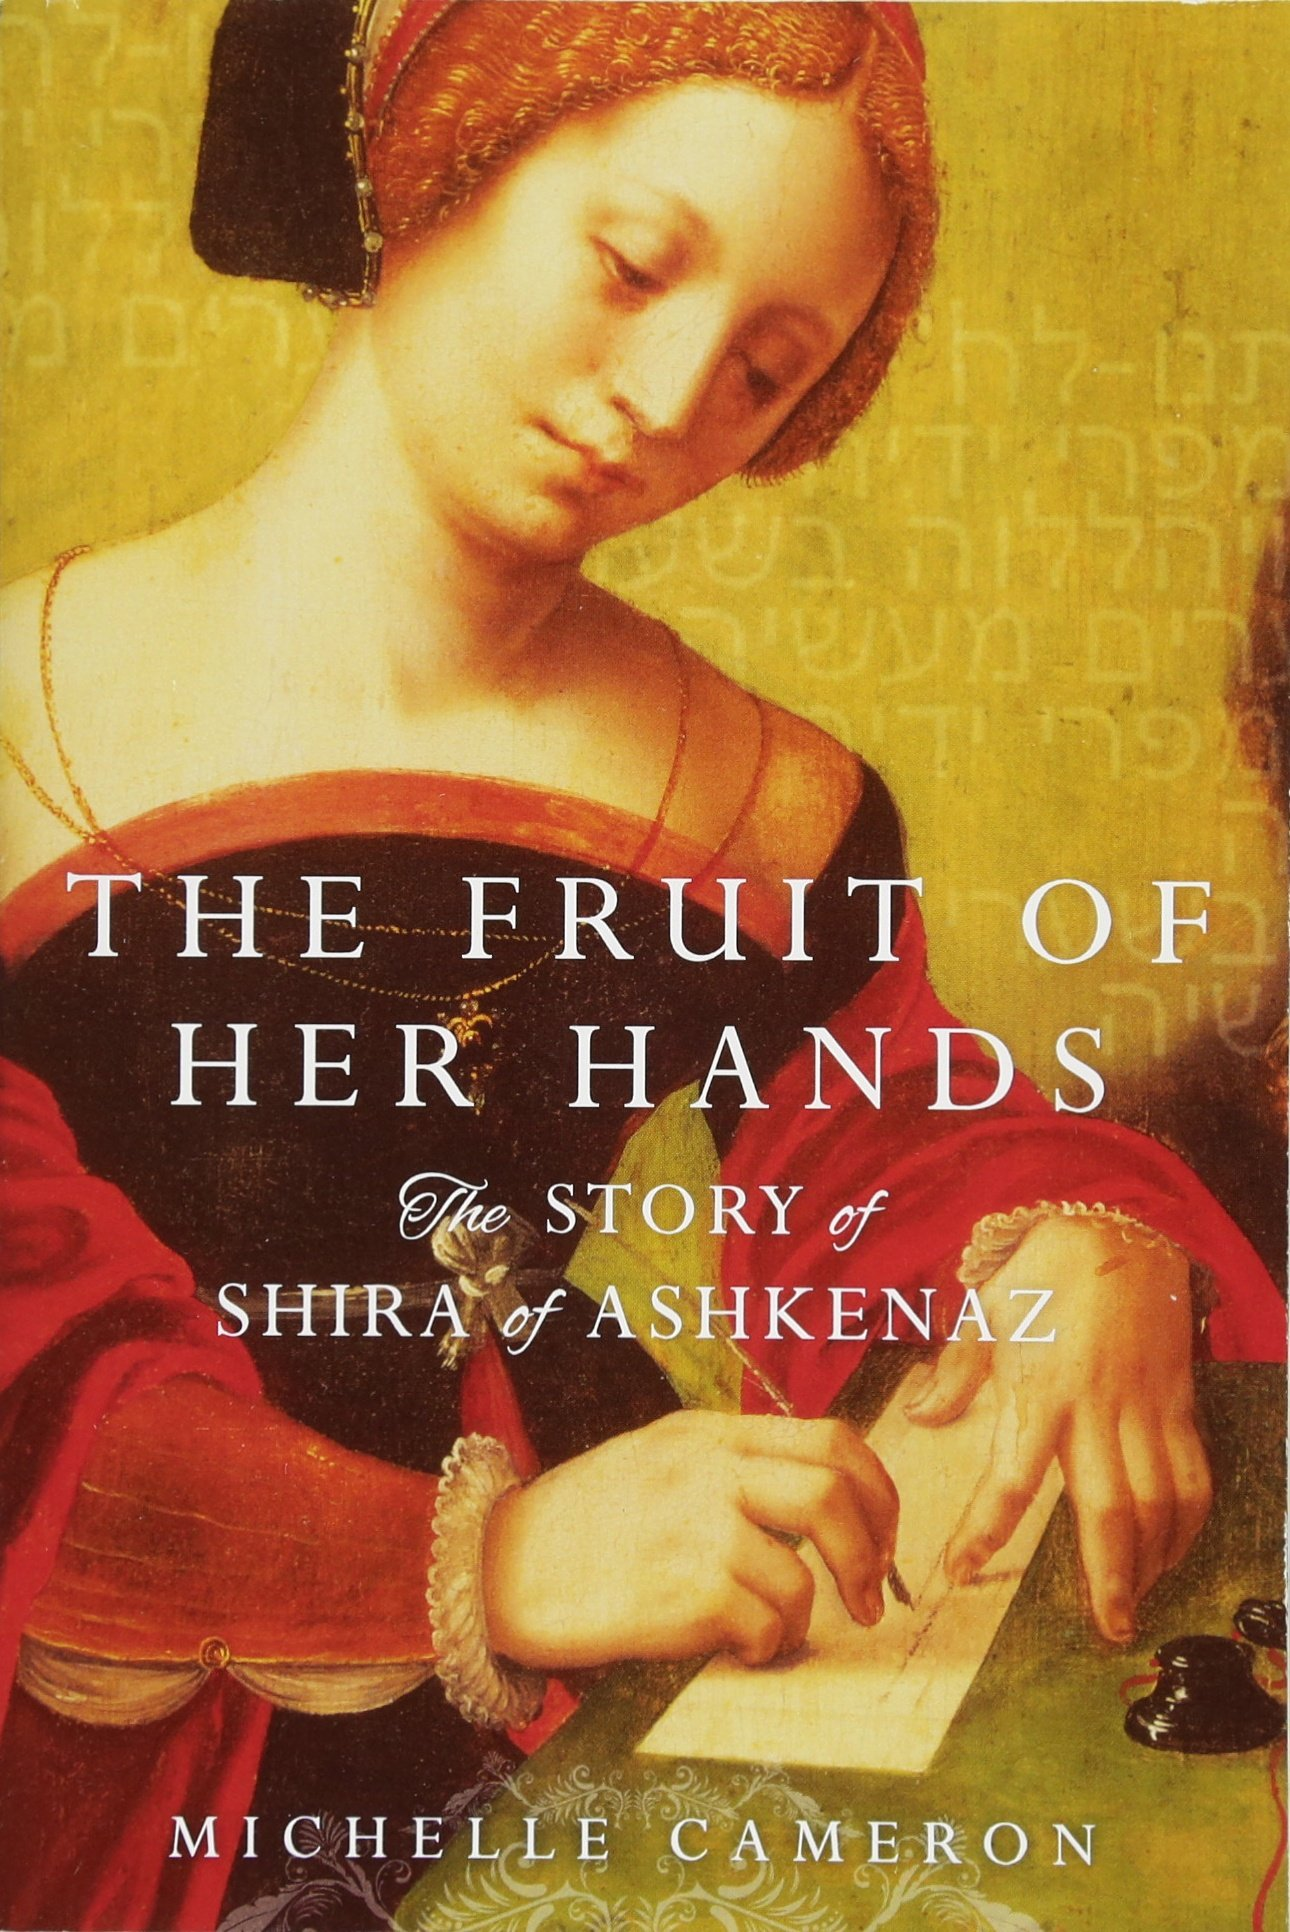 Amazon.com: The Fruit of Her Hands: The Story of Shira of Ashkenaz  (9781476754635): Michelle Cameron: Books